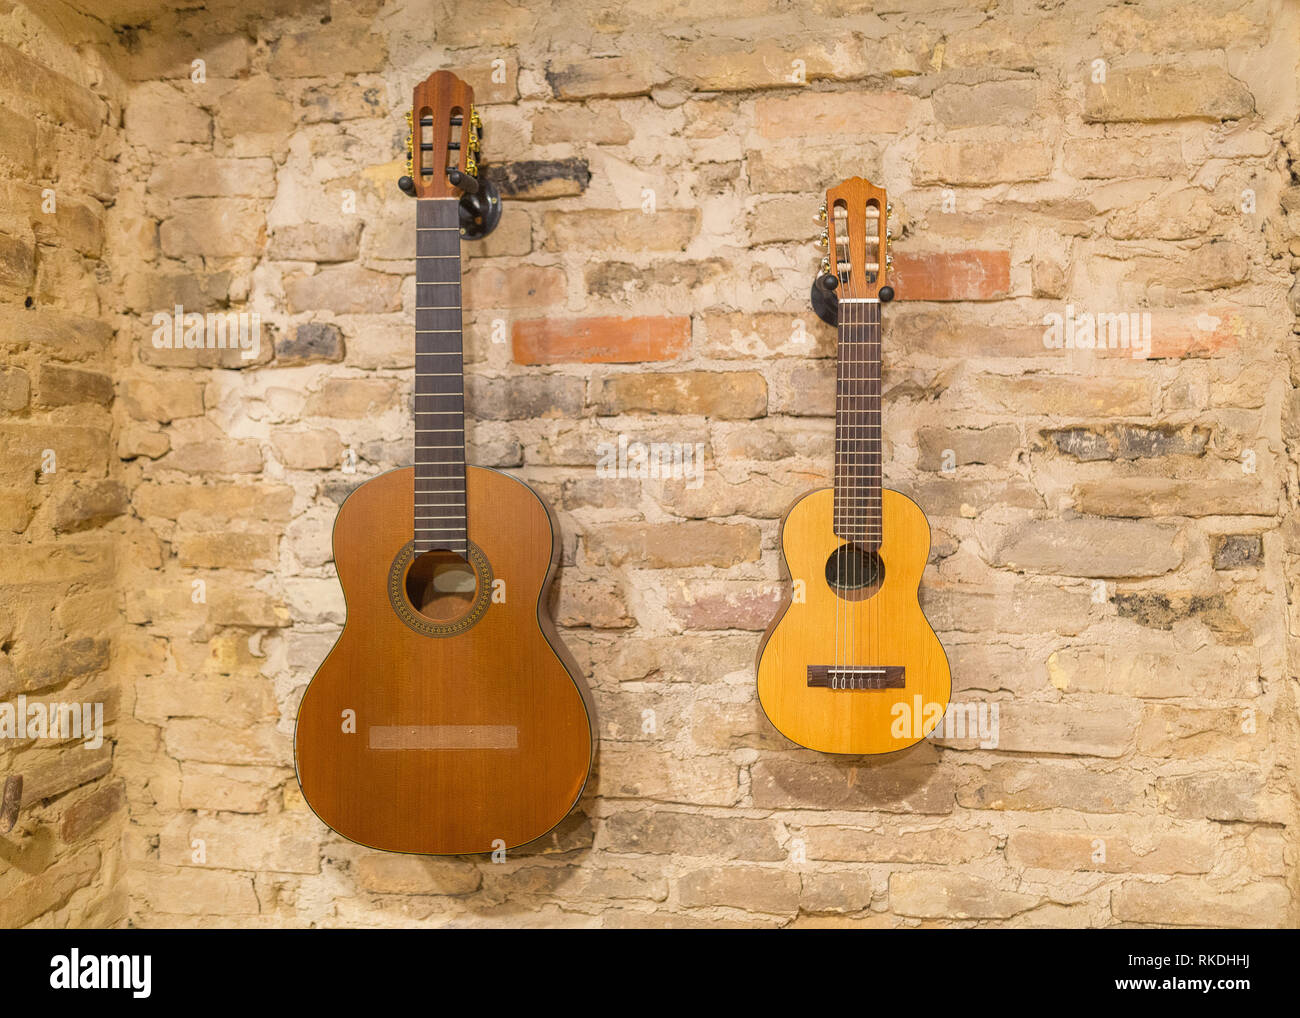 Two acoustic guitars hanging on brick wall background indoors. Vintage retro style - Stock Image